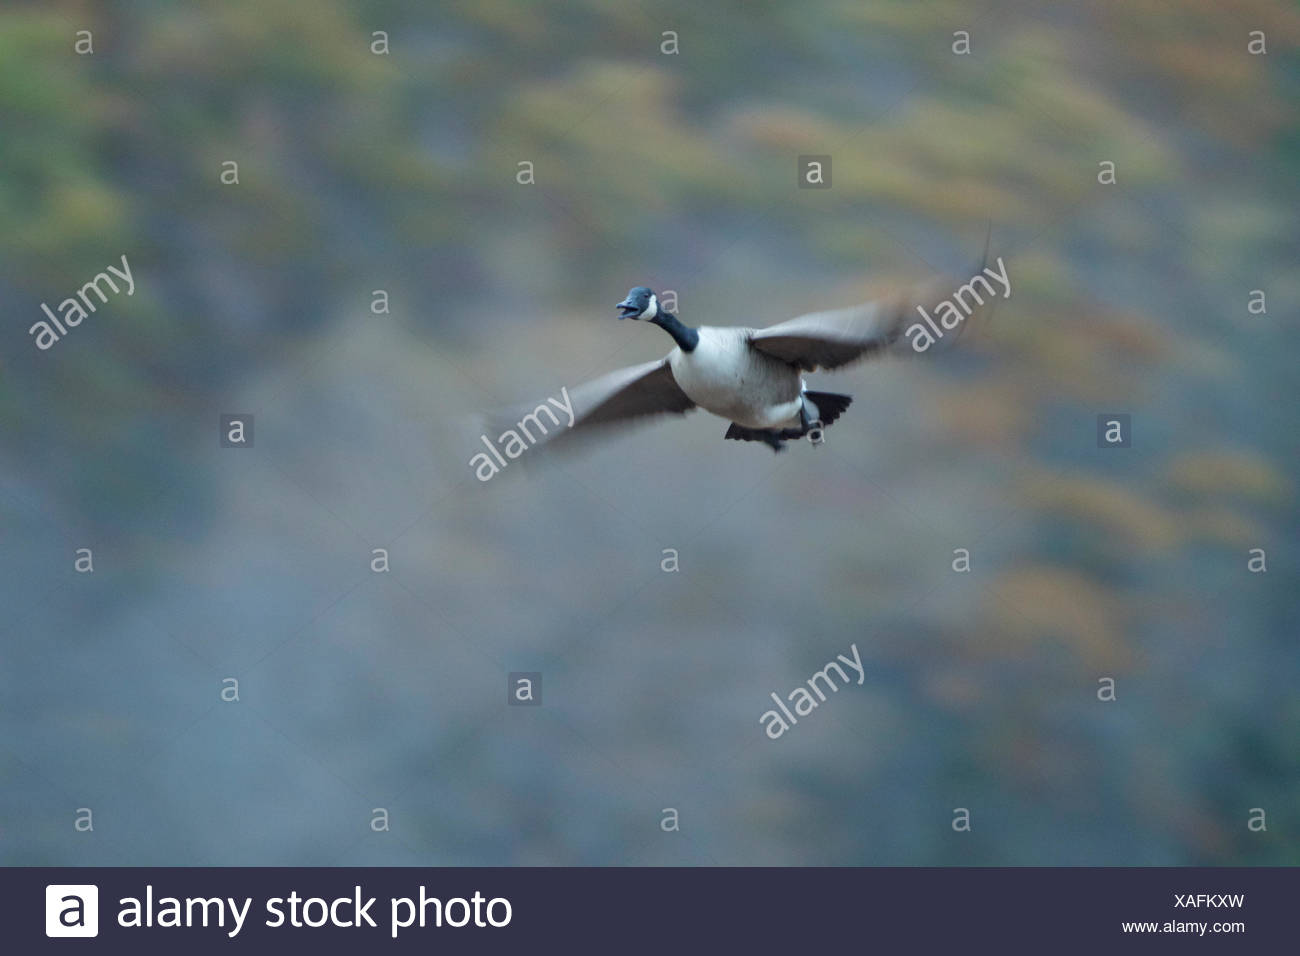 Blurred wings of Canada Goose, Branta canadensis, in flight. - Stock Image